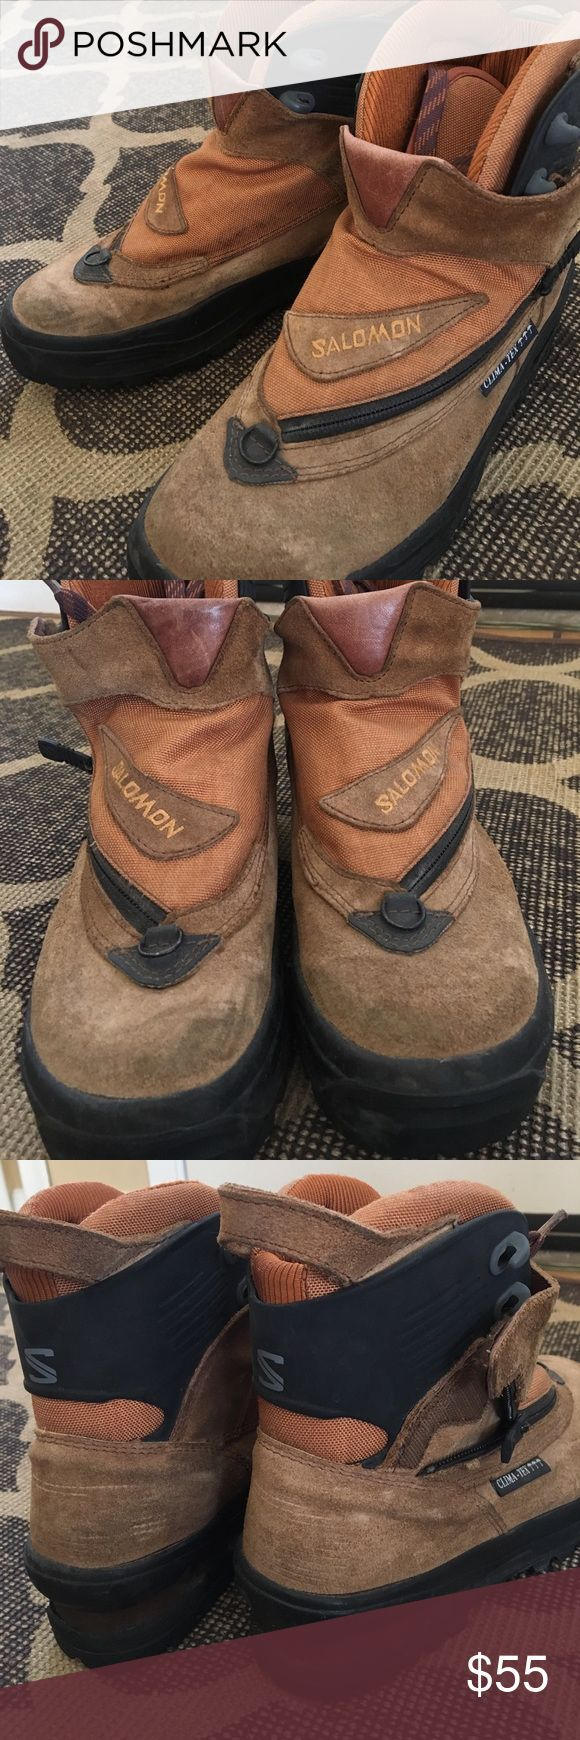 Salomon Hiking Boots From technical climbing to trail time, these are serious hikers. Super comfortable. Excellent condition. Salomon Shoes